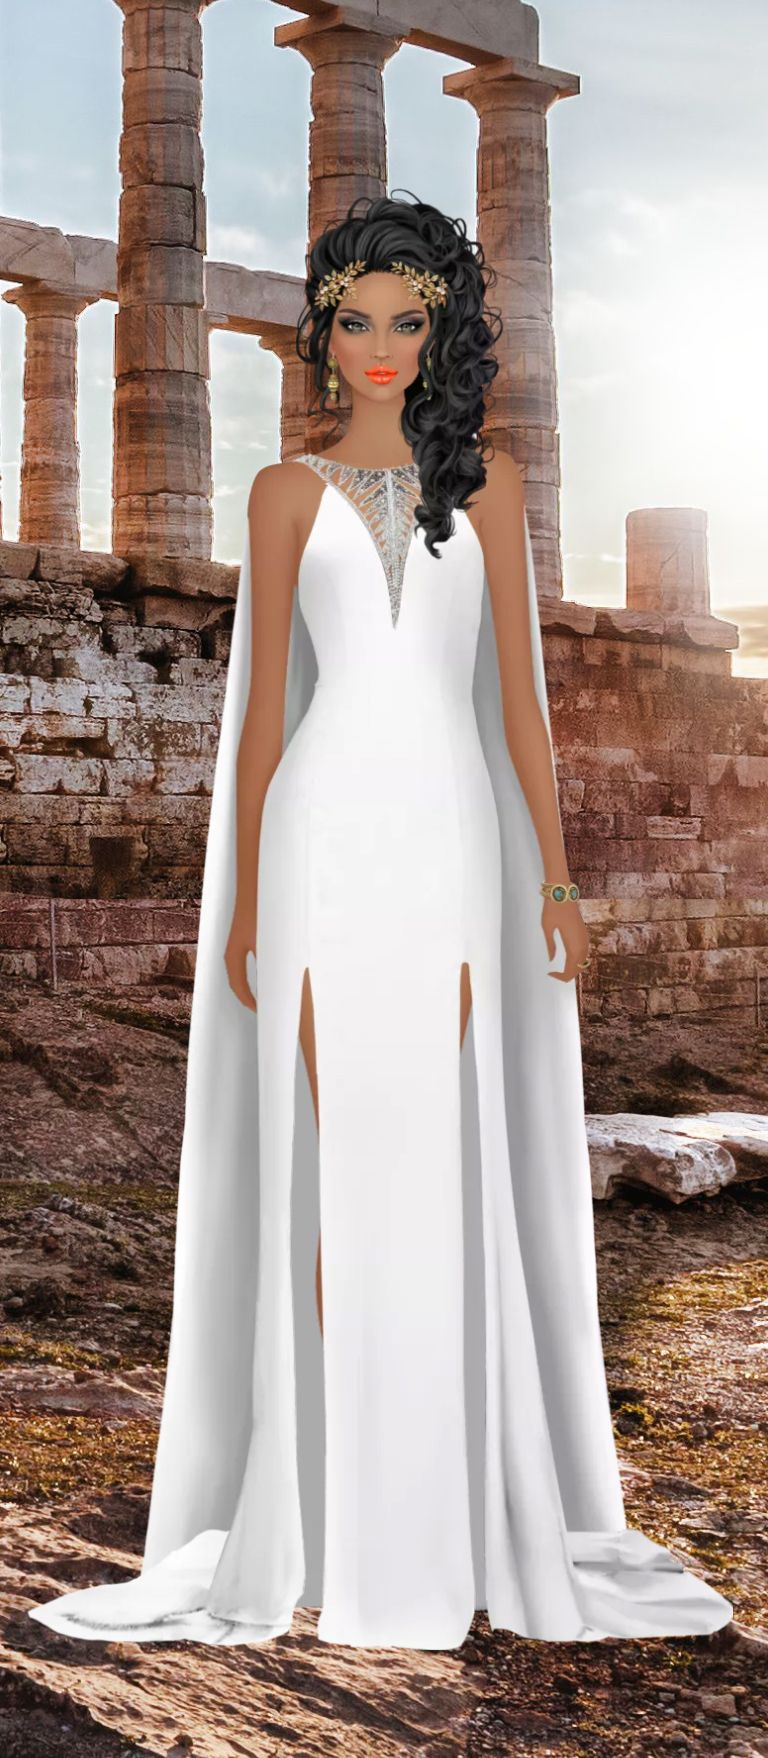 Pin By Crissy Owen On Covet Fashions Fashion Dresses Egyptian Costume